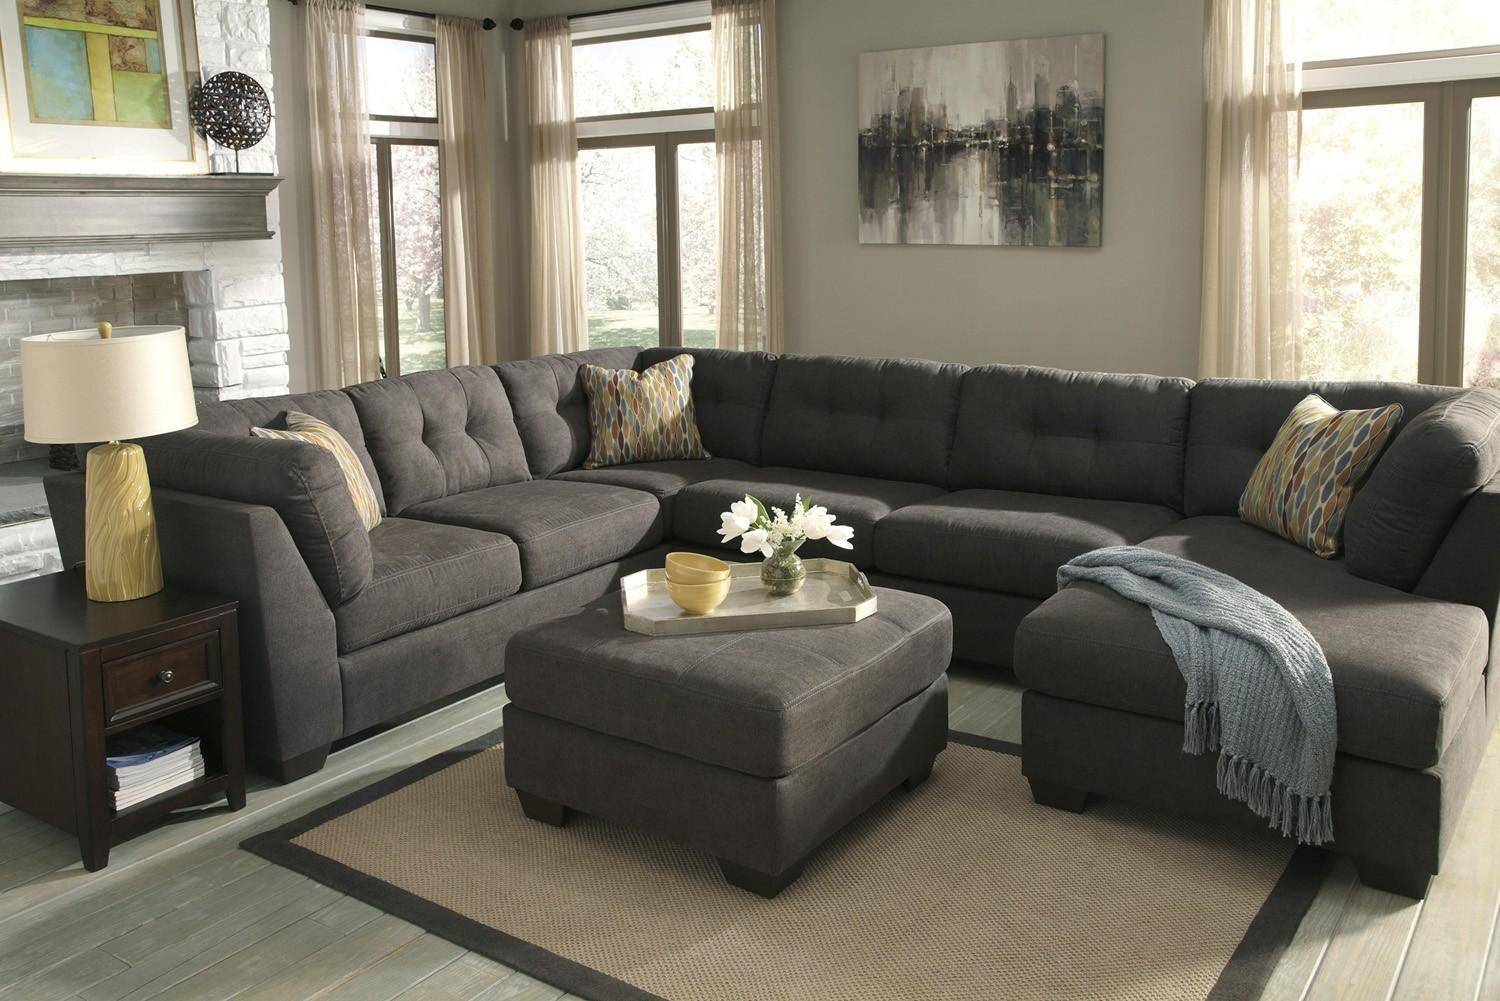 Ashley Delta City 4pcs Sectional In Steel Right Hand Facing Contemporary Style Reviews 19700